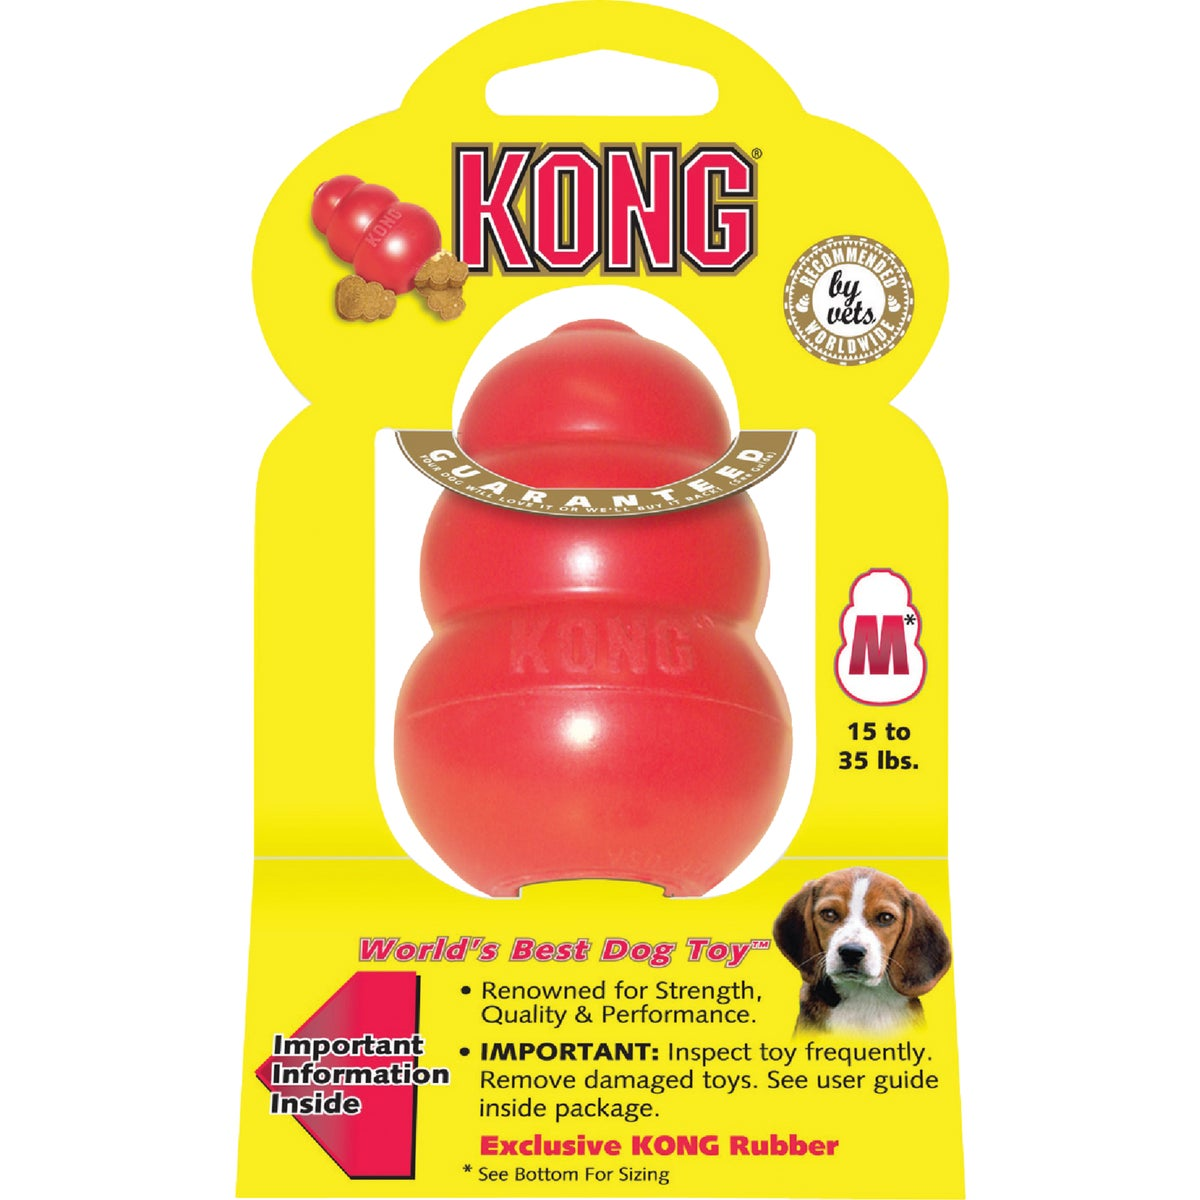 MEDIUM RED KONG DOG TOY - T2MTXR1 by Kong Company